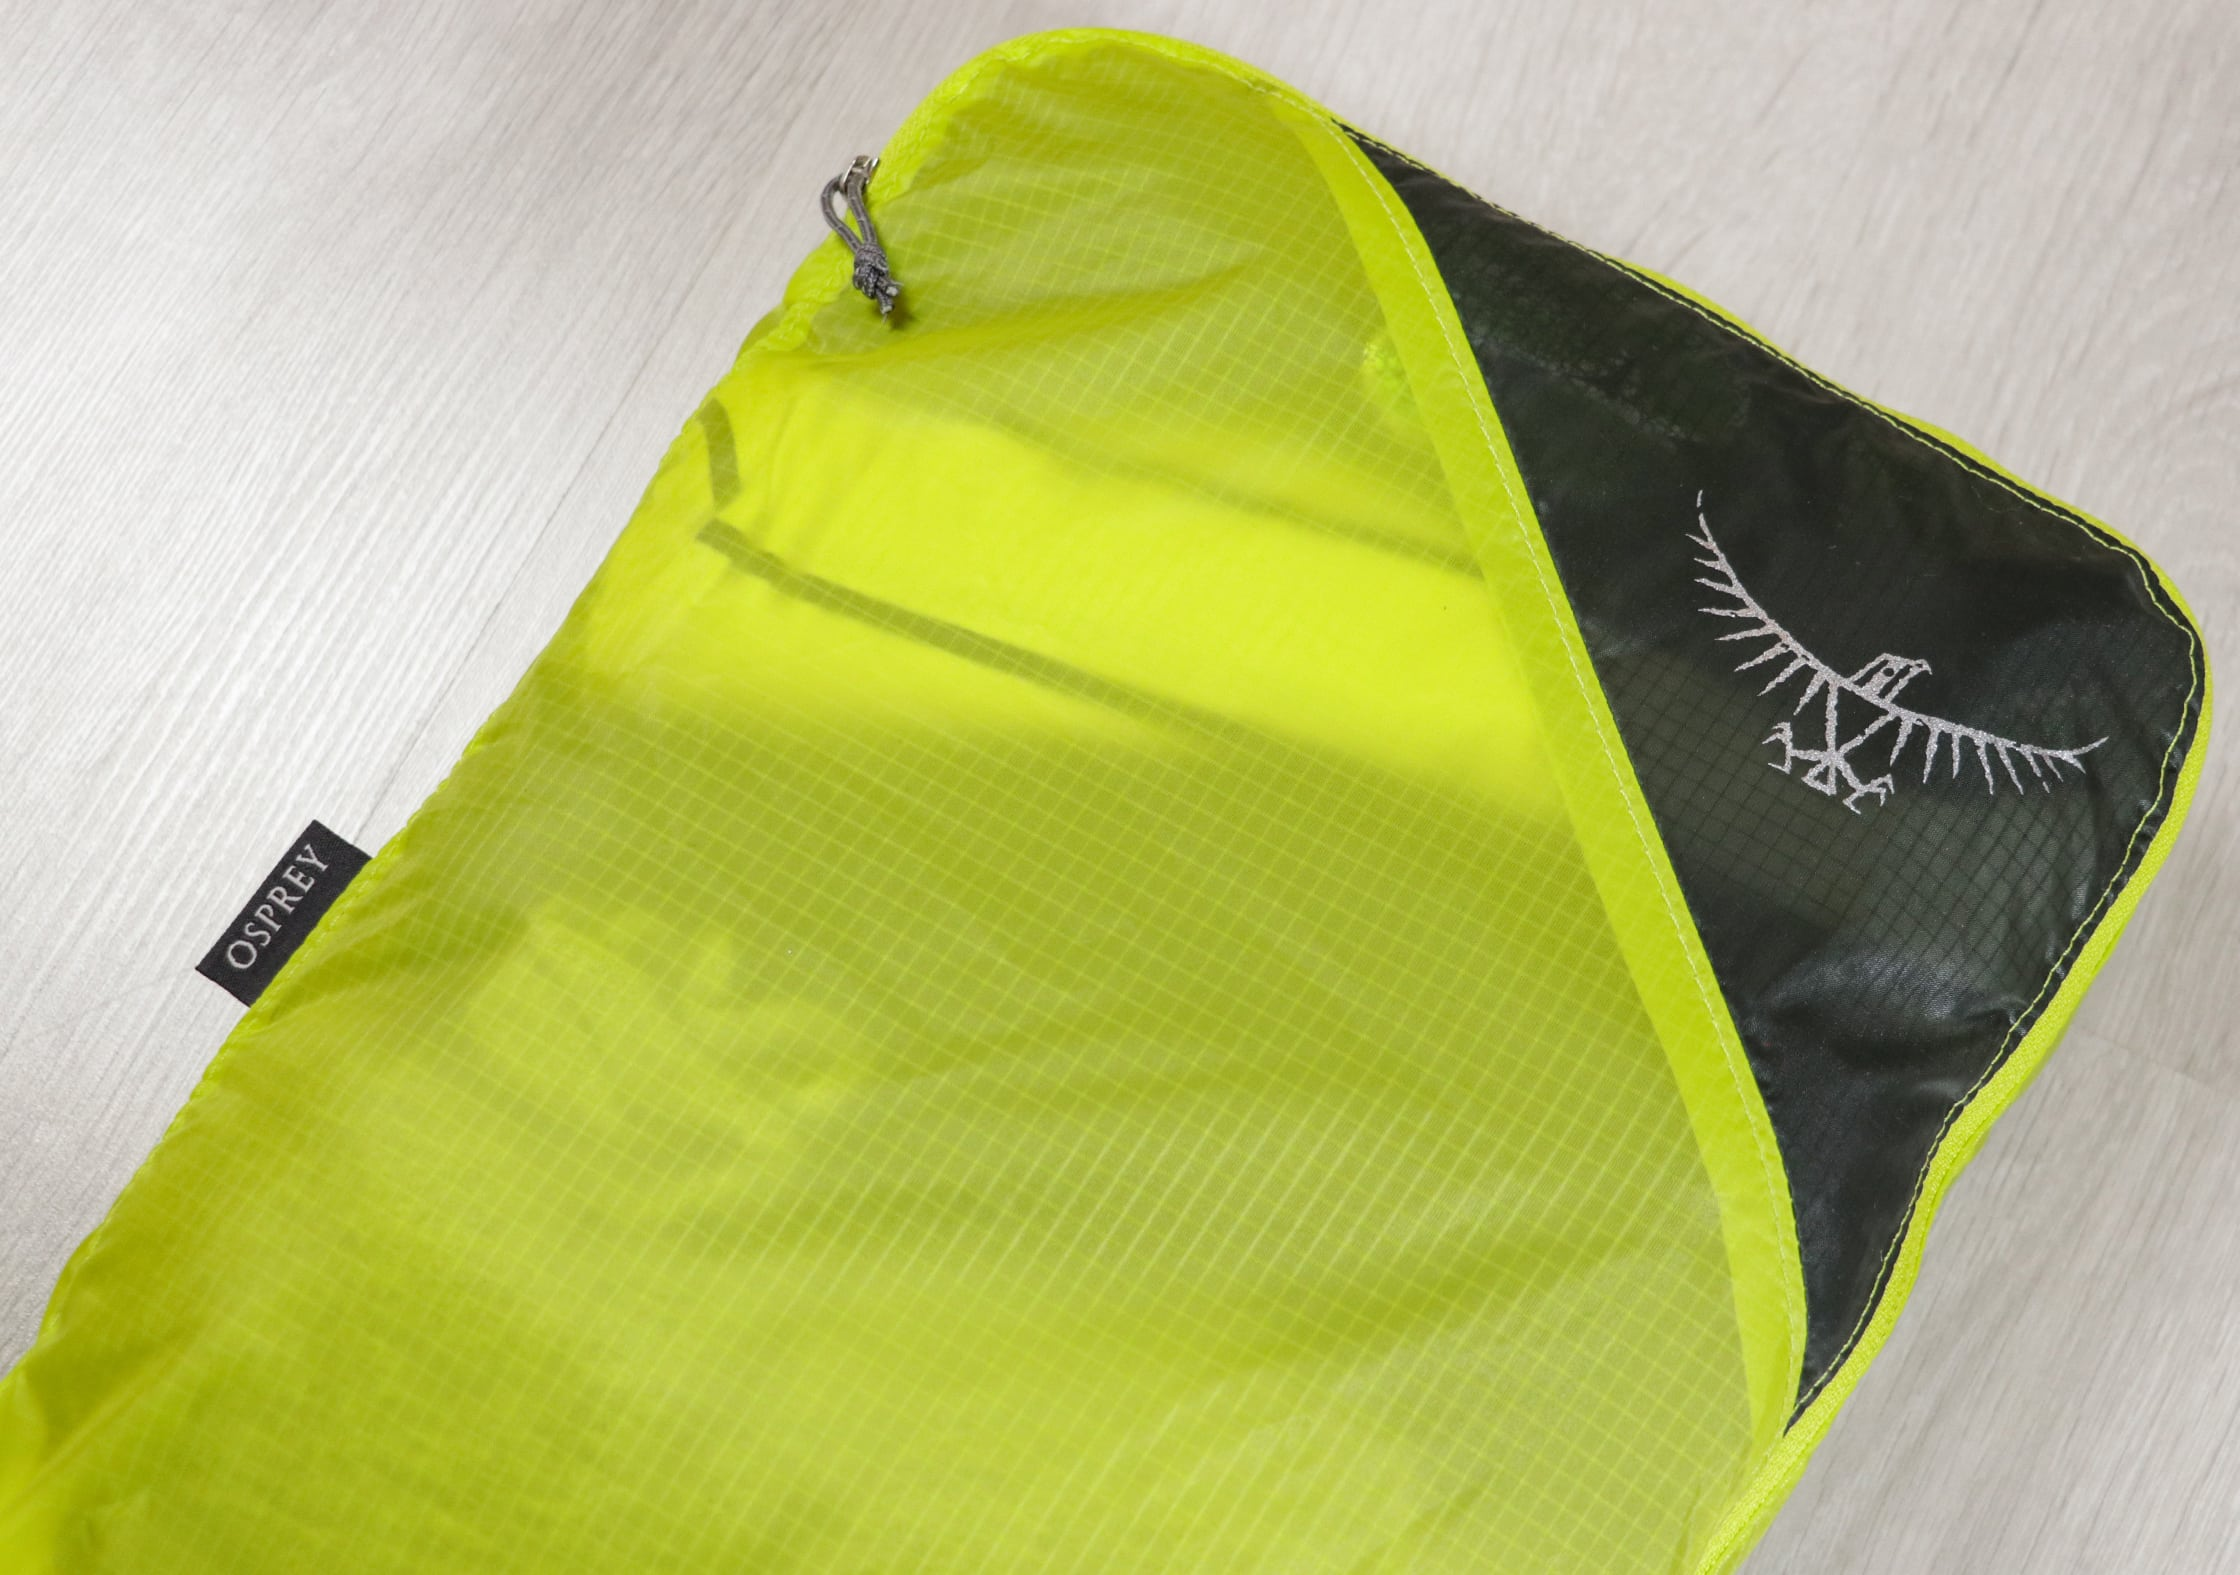 Branding On The Osprey Ultralight Packing Cube